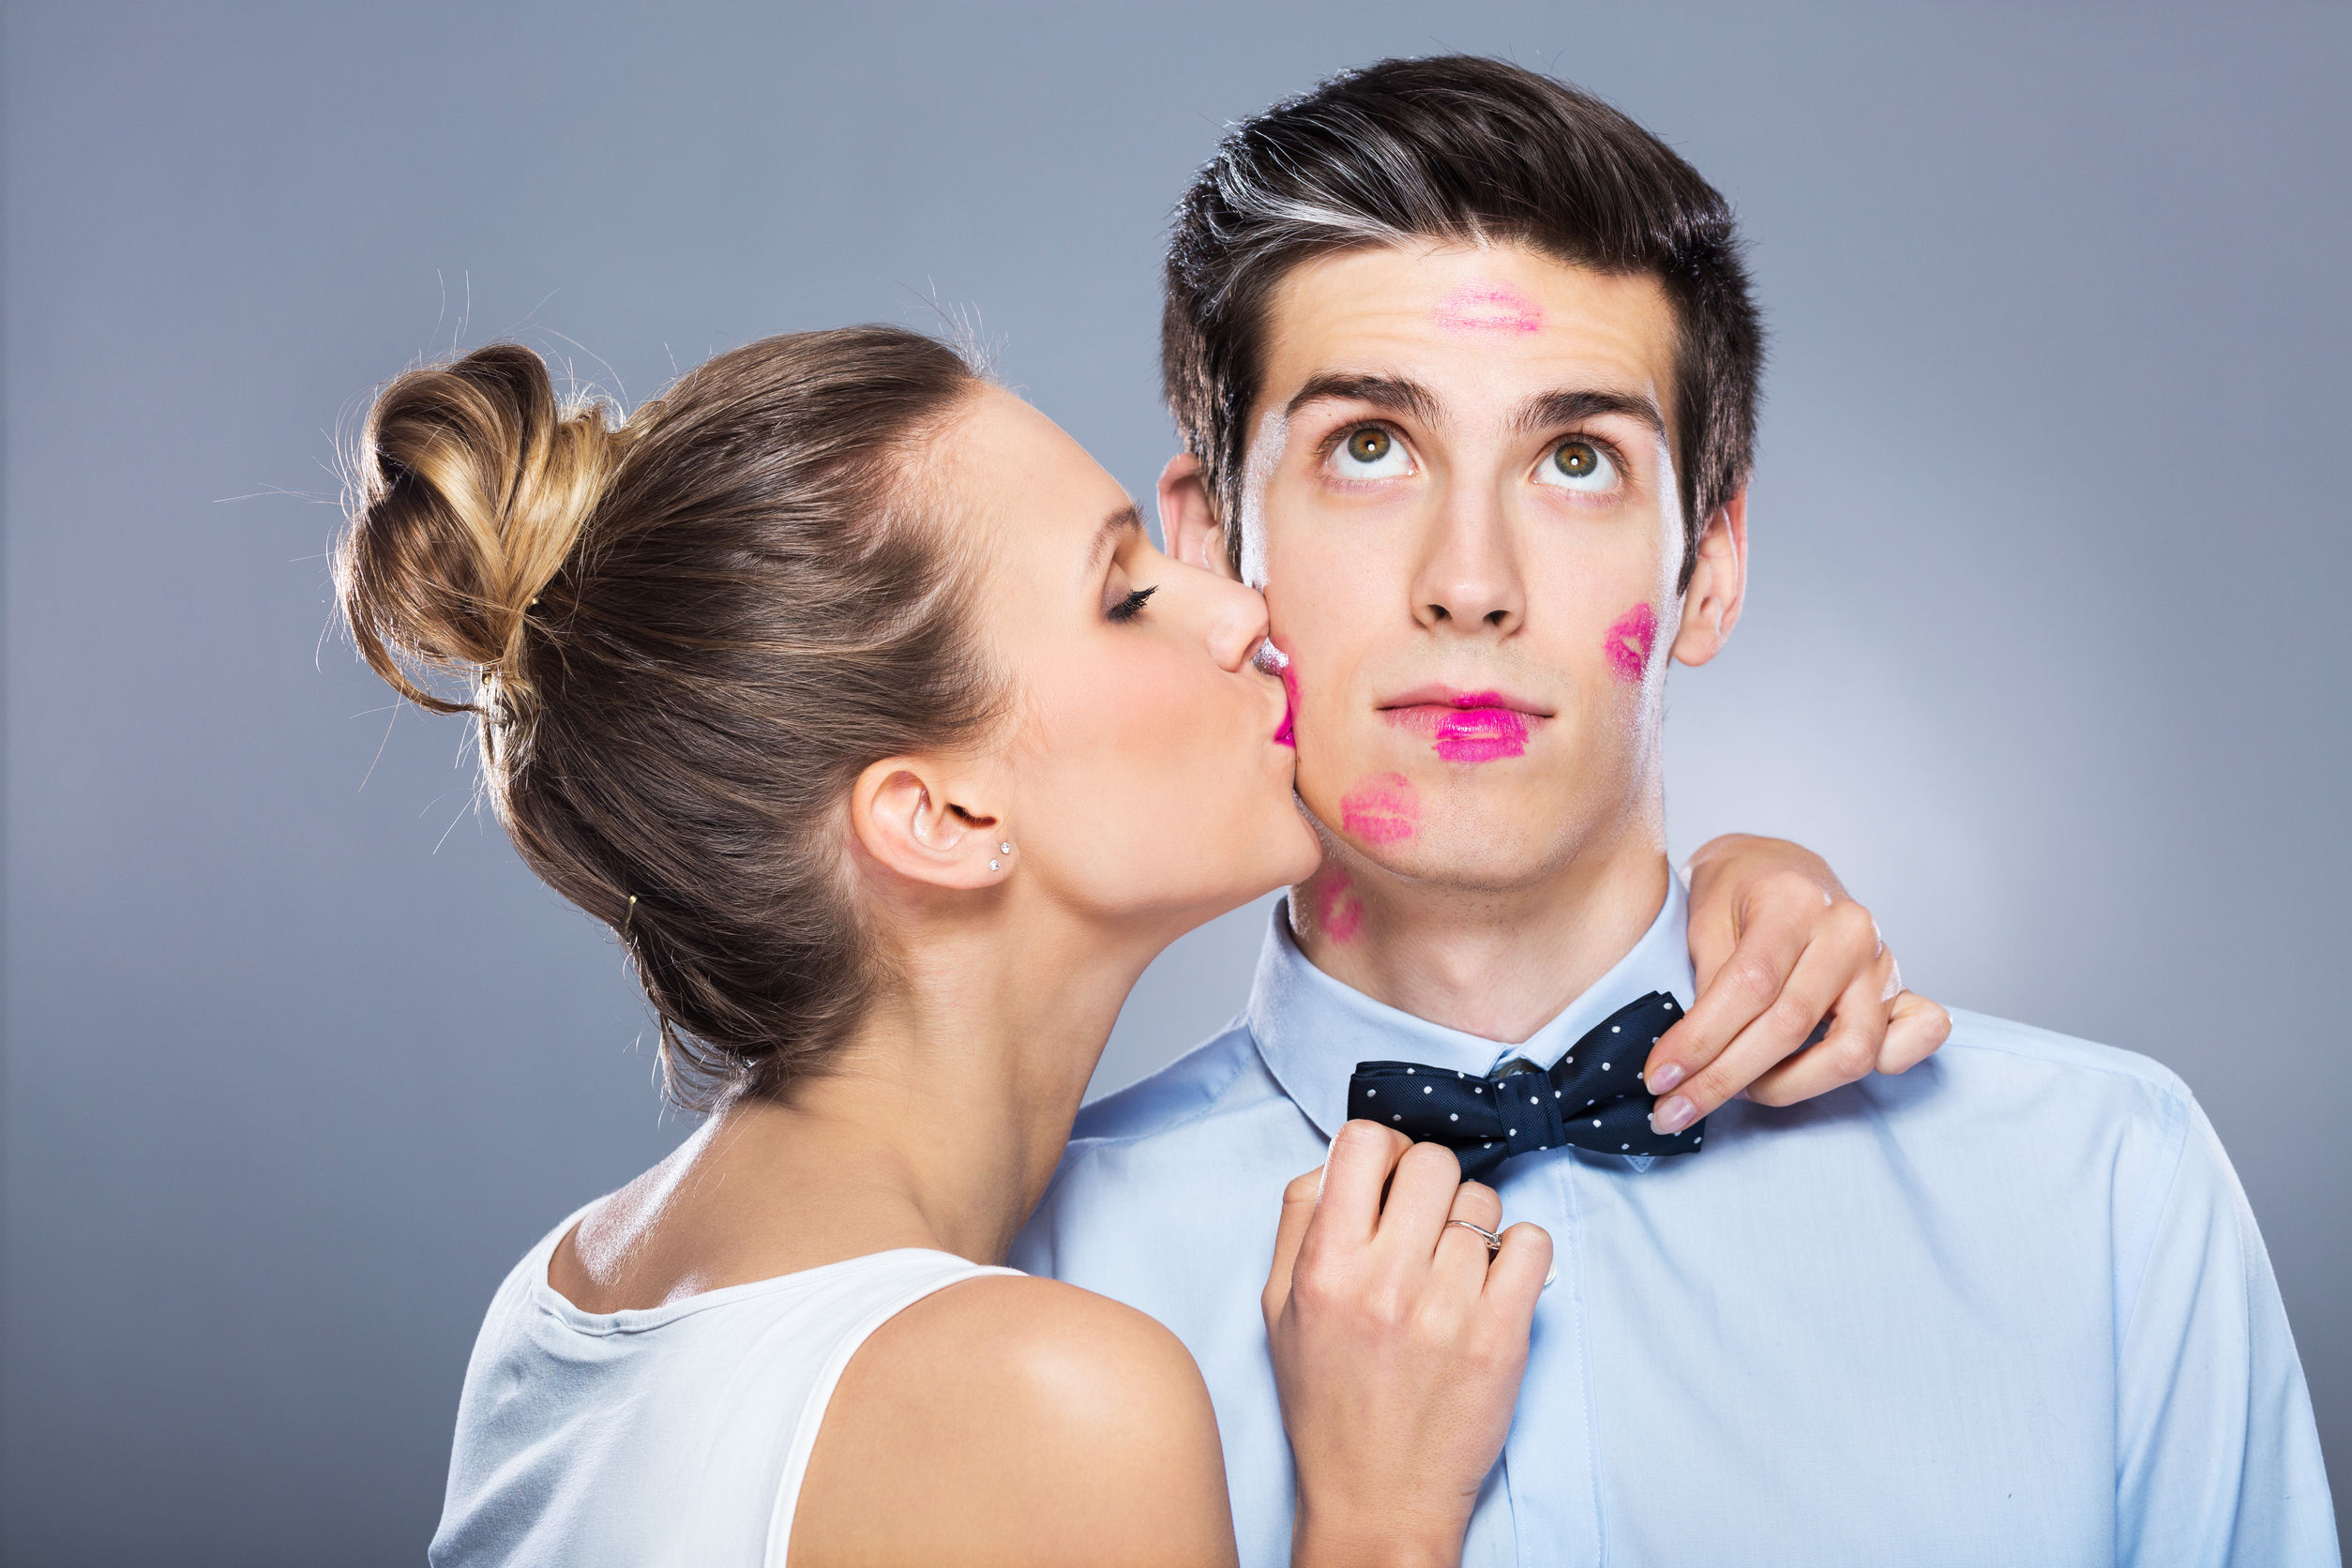 woman kissing man-kissing can pass cold sores from one person to another